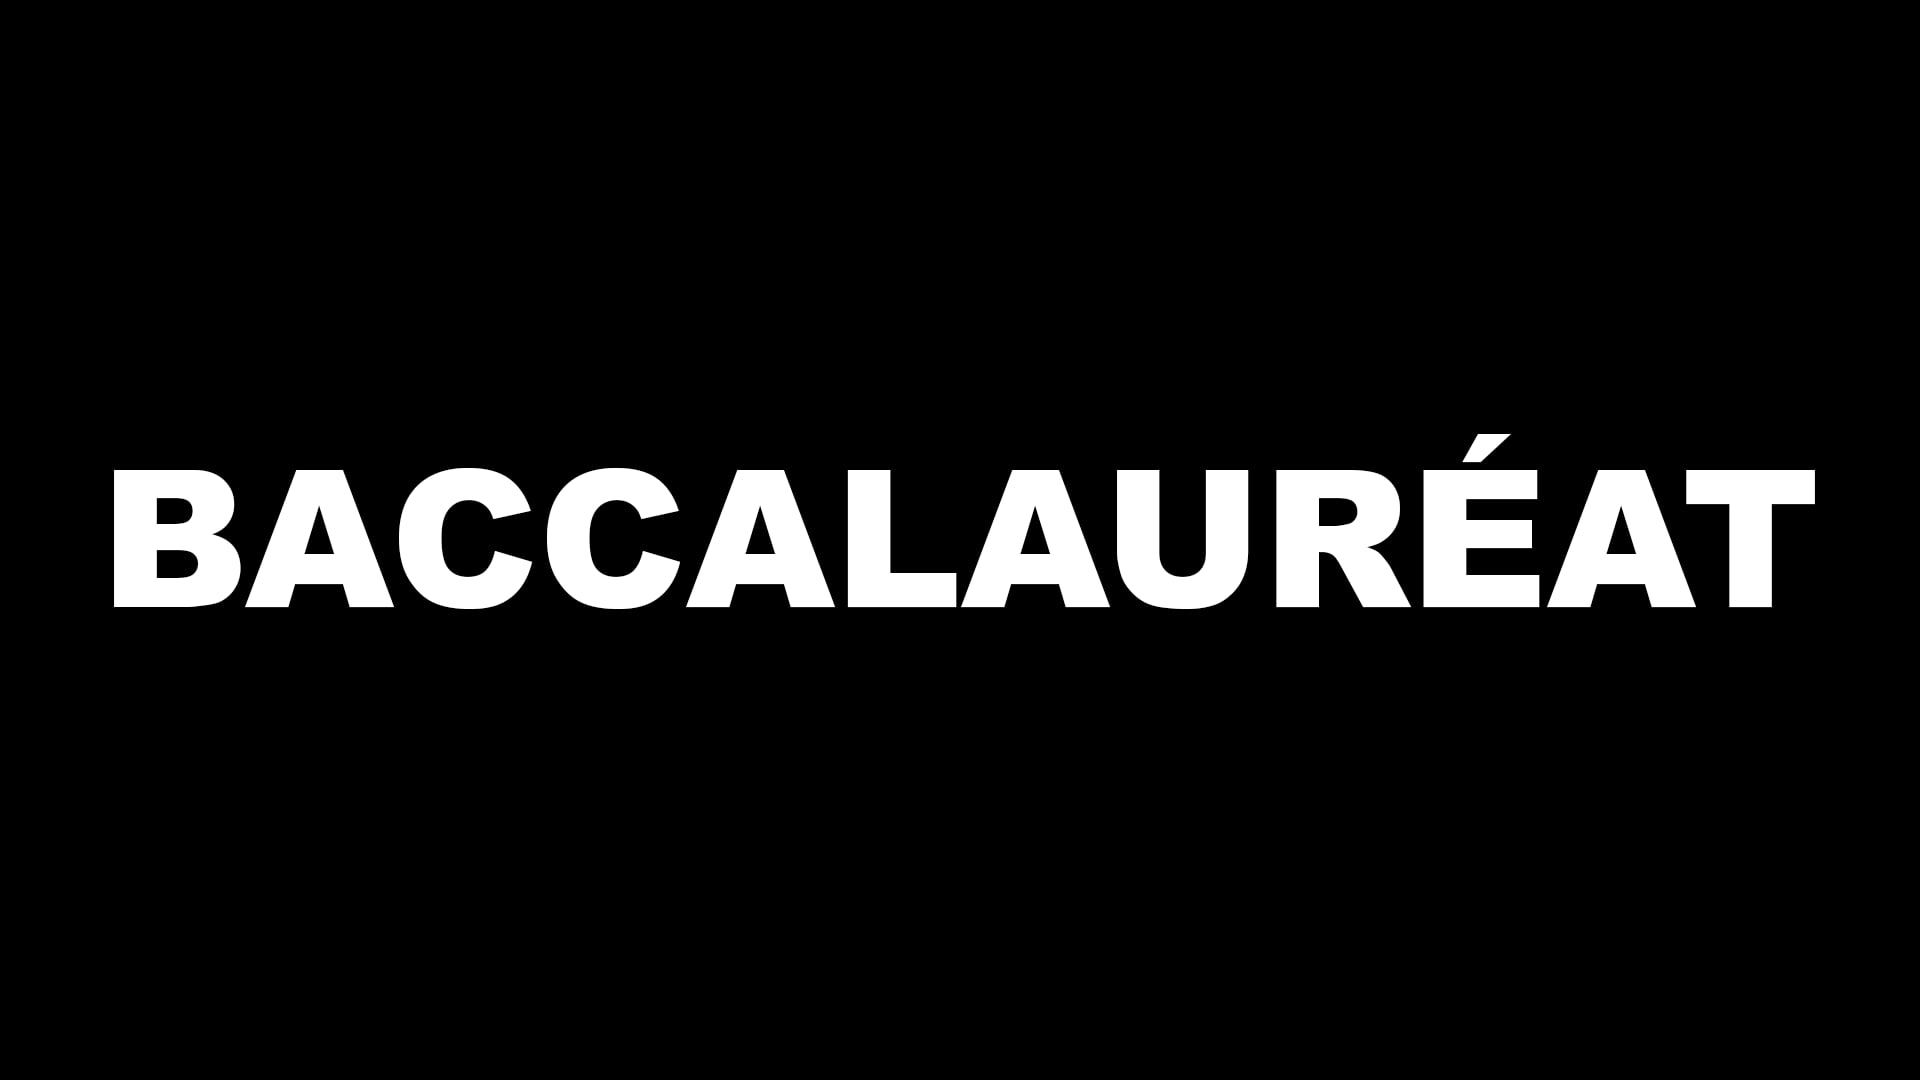 Baccalauréat (french film)